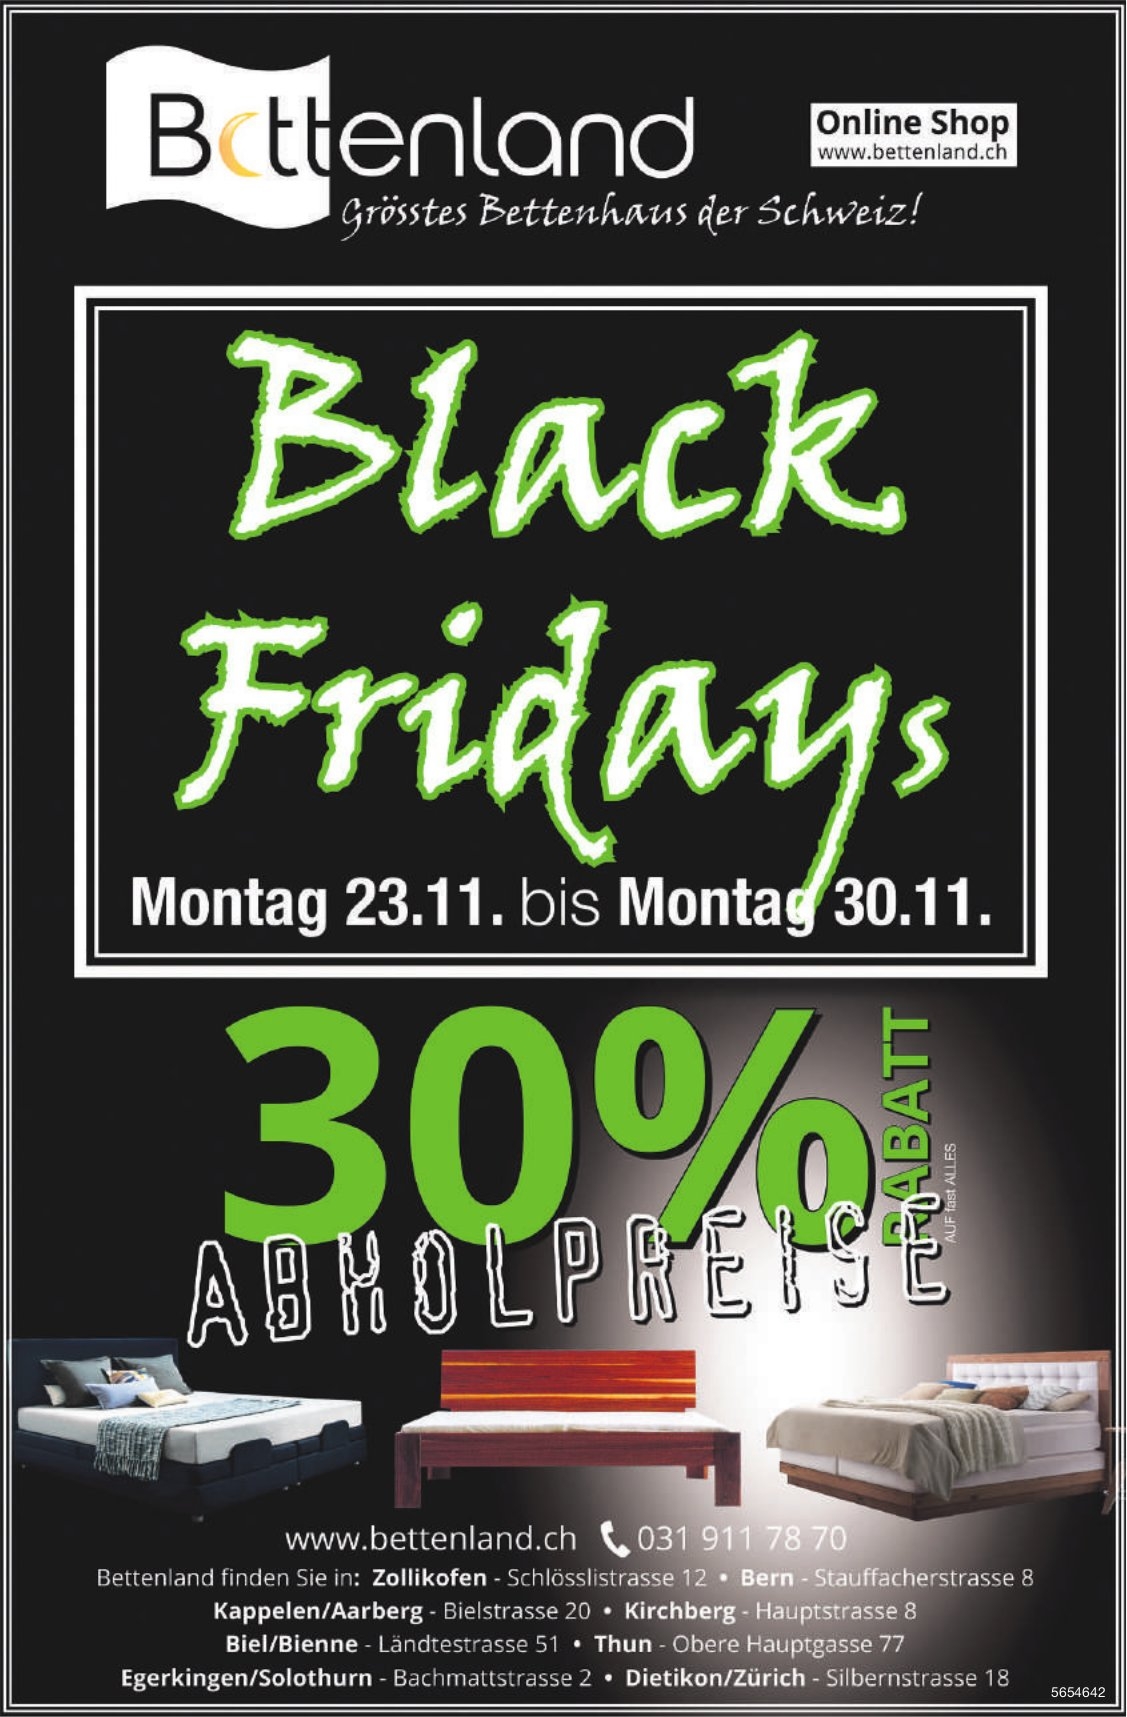 Black Friday, 30% Rabatt, 23. - 30. November, Bettenland